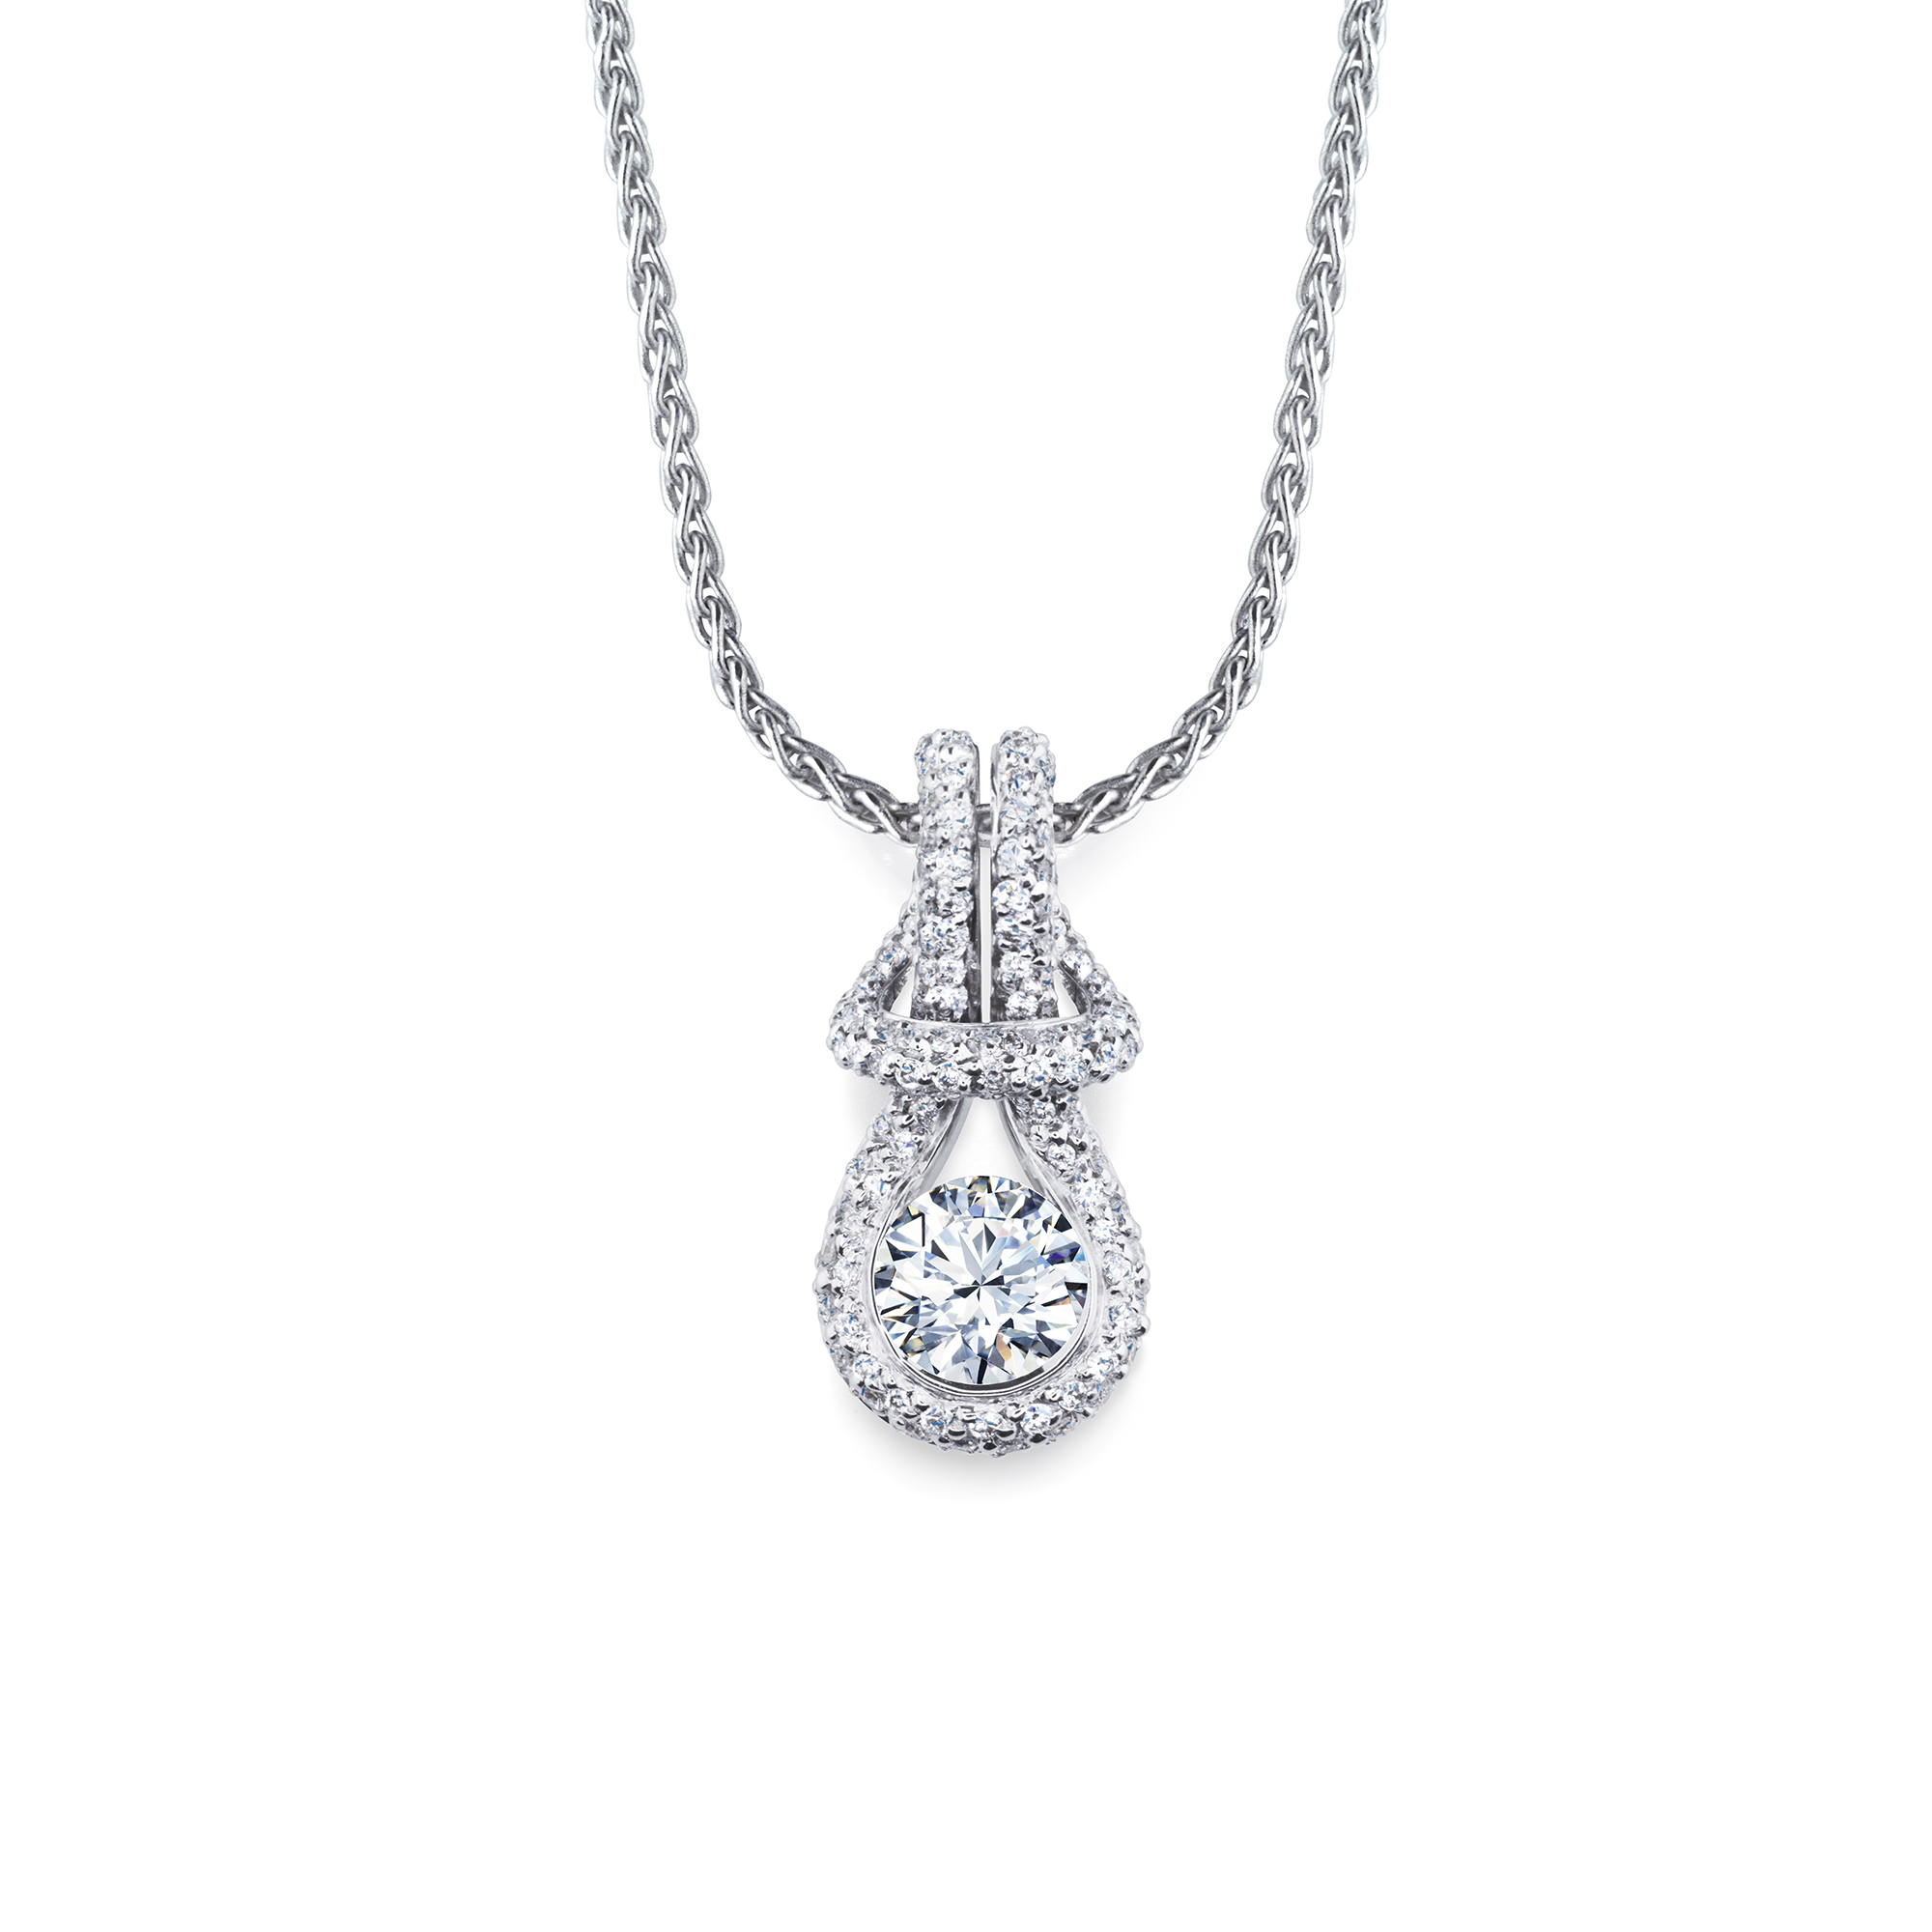 Forevermark encordia pave solitaire diamond pendant necklace degem forevermark encordia pave solitaire diamond pendant necklace aloadofball Image collections